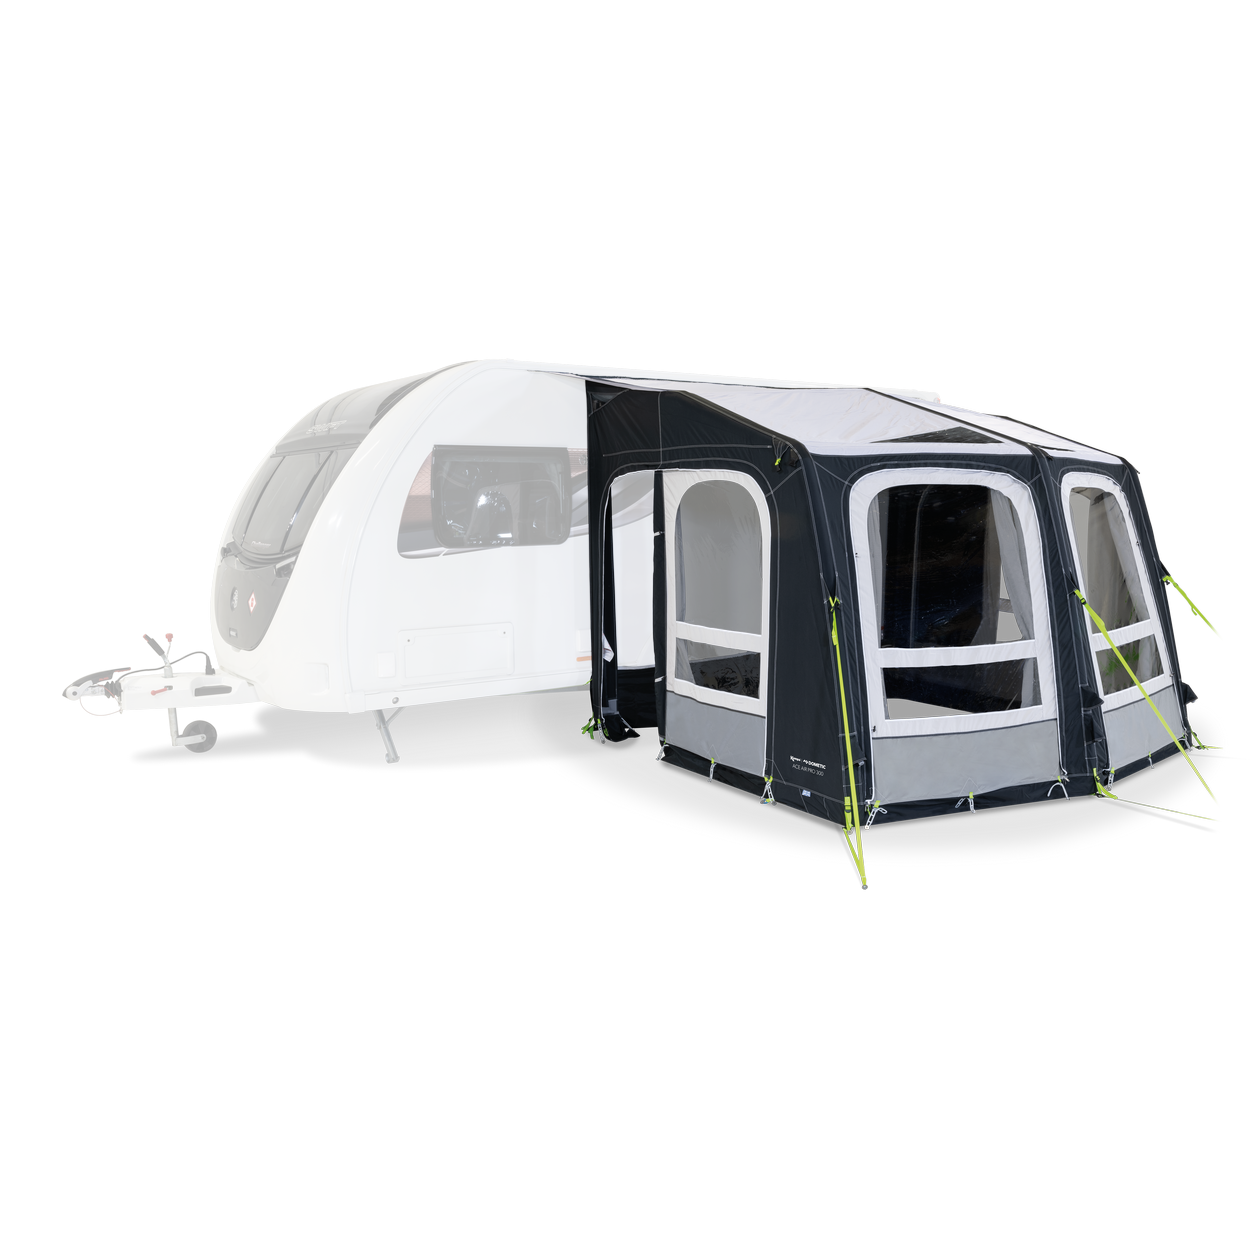 Kampa Dometic Ace Air Pro 300 Norwich Camping Ce7174